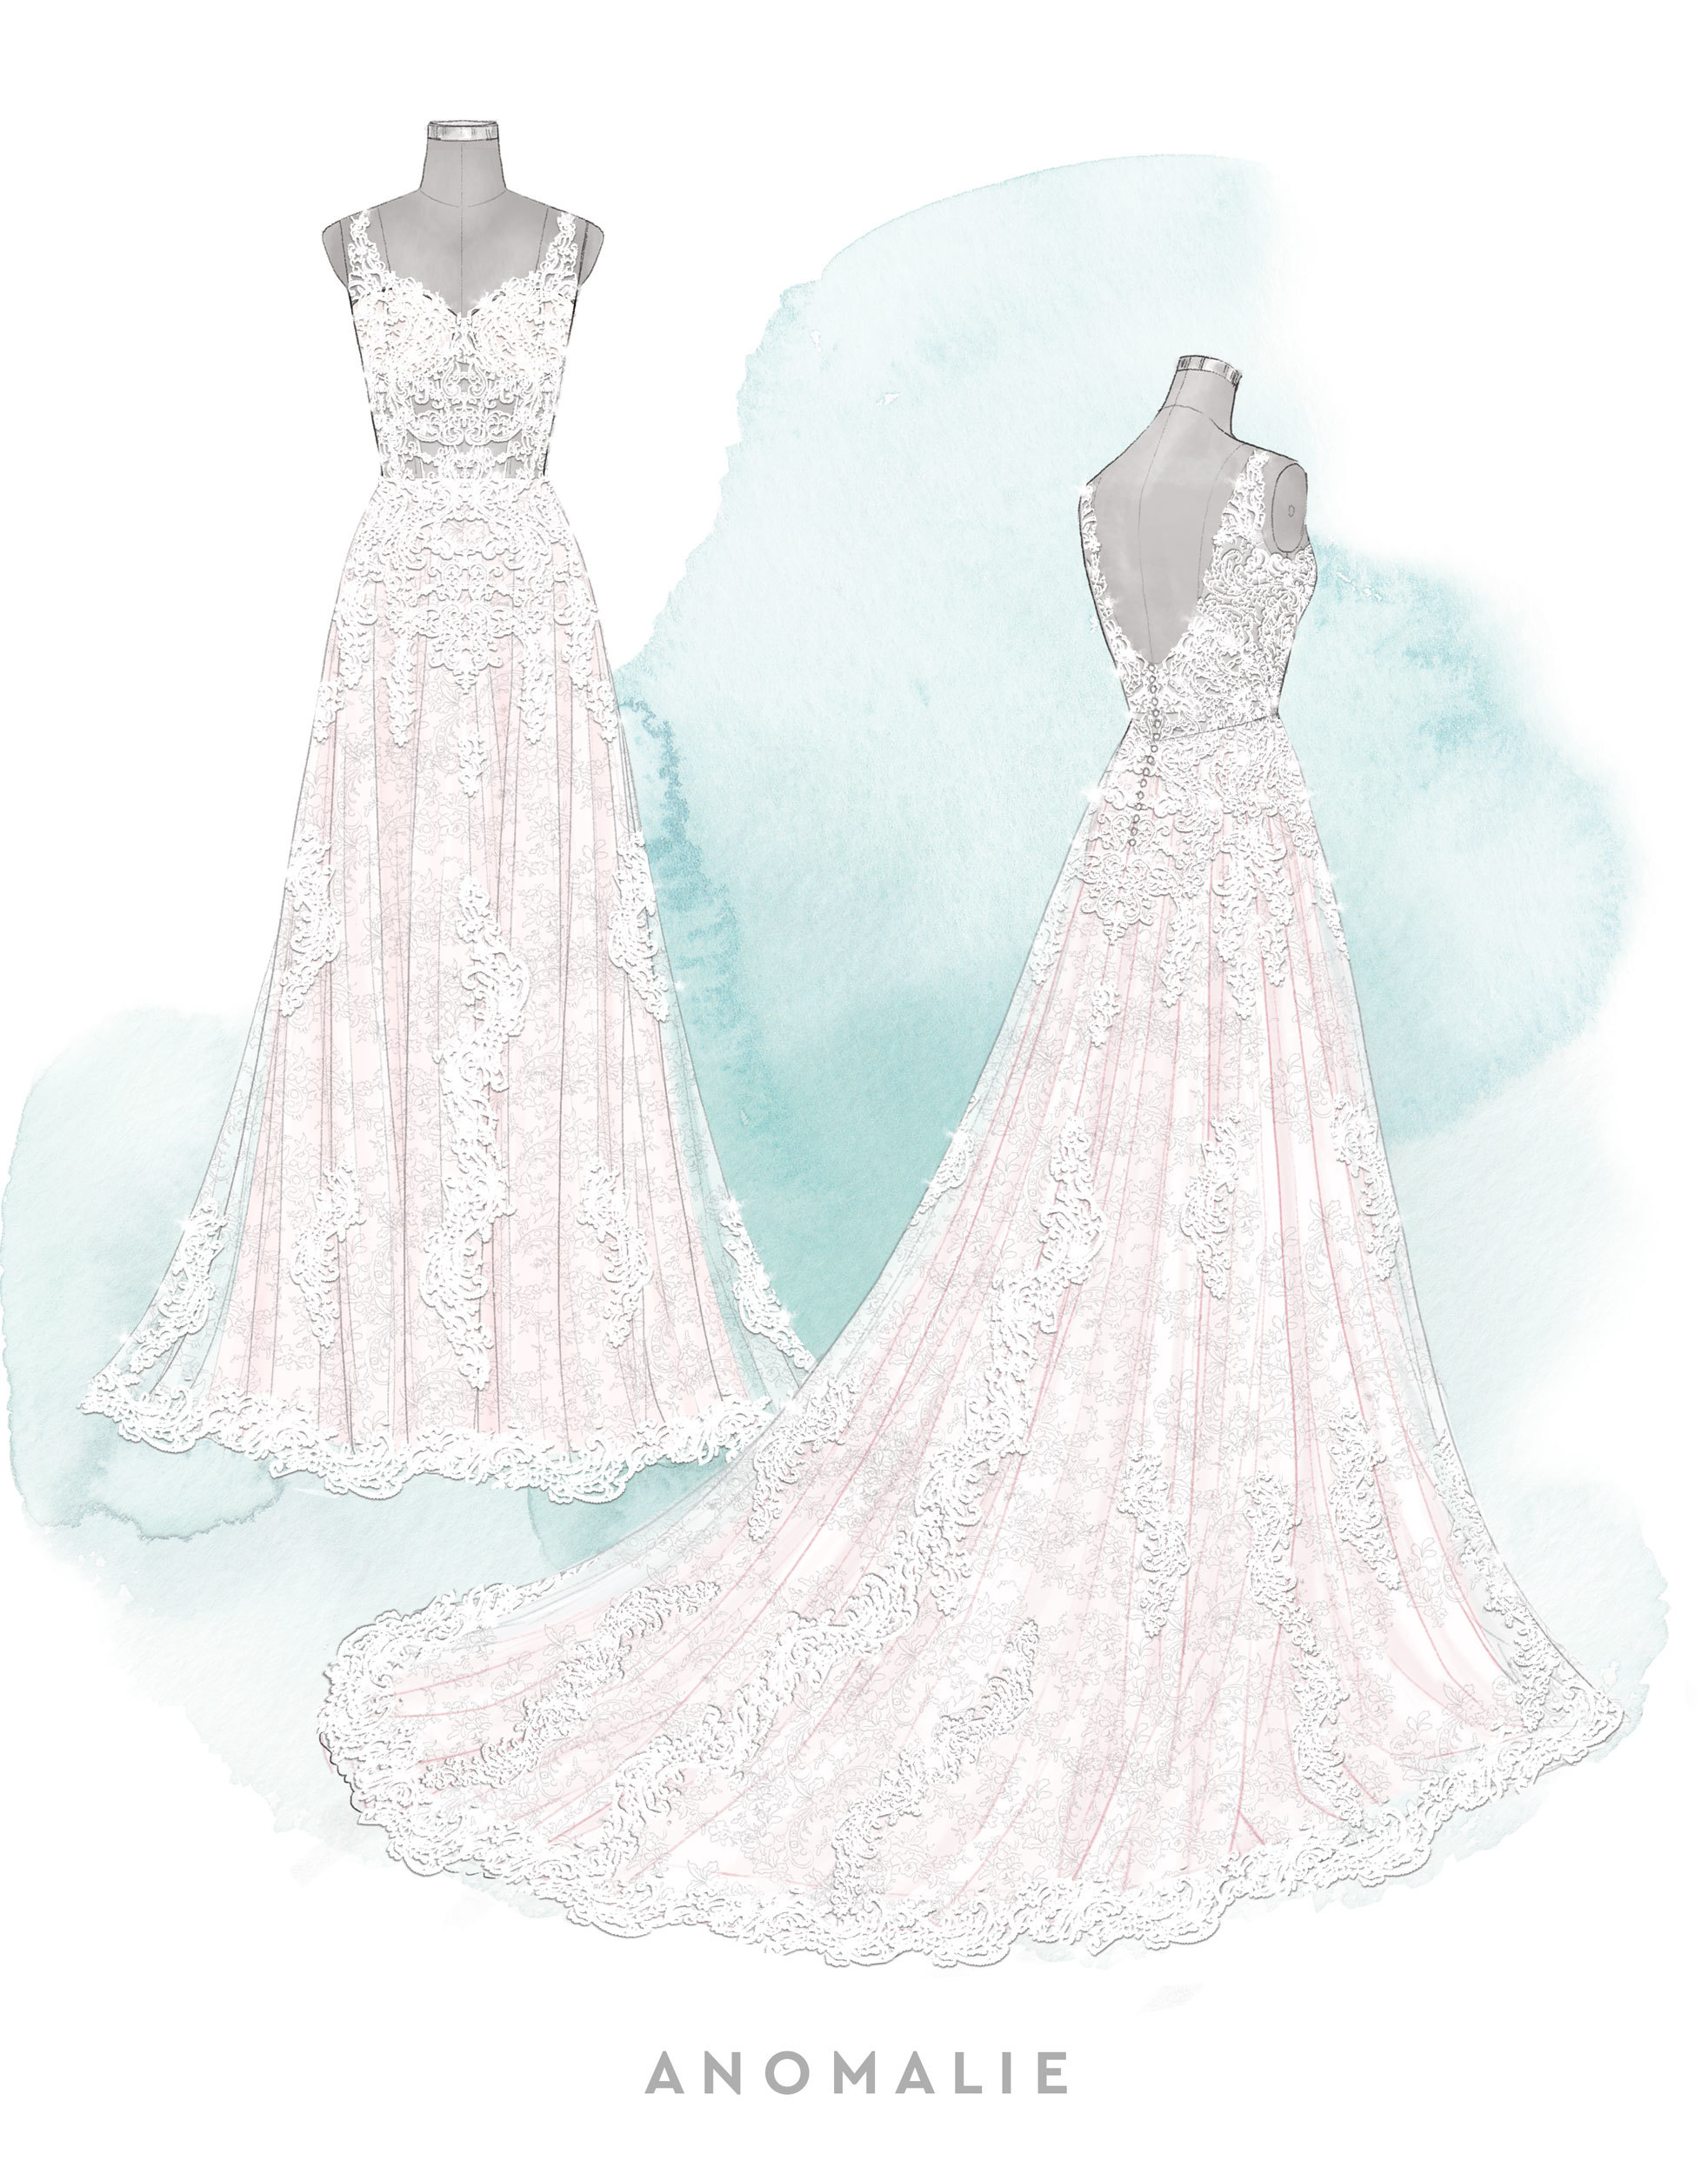 Anomalie sketch featuring a sleeveless lace dress with an exposed bodice.